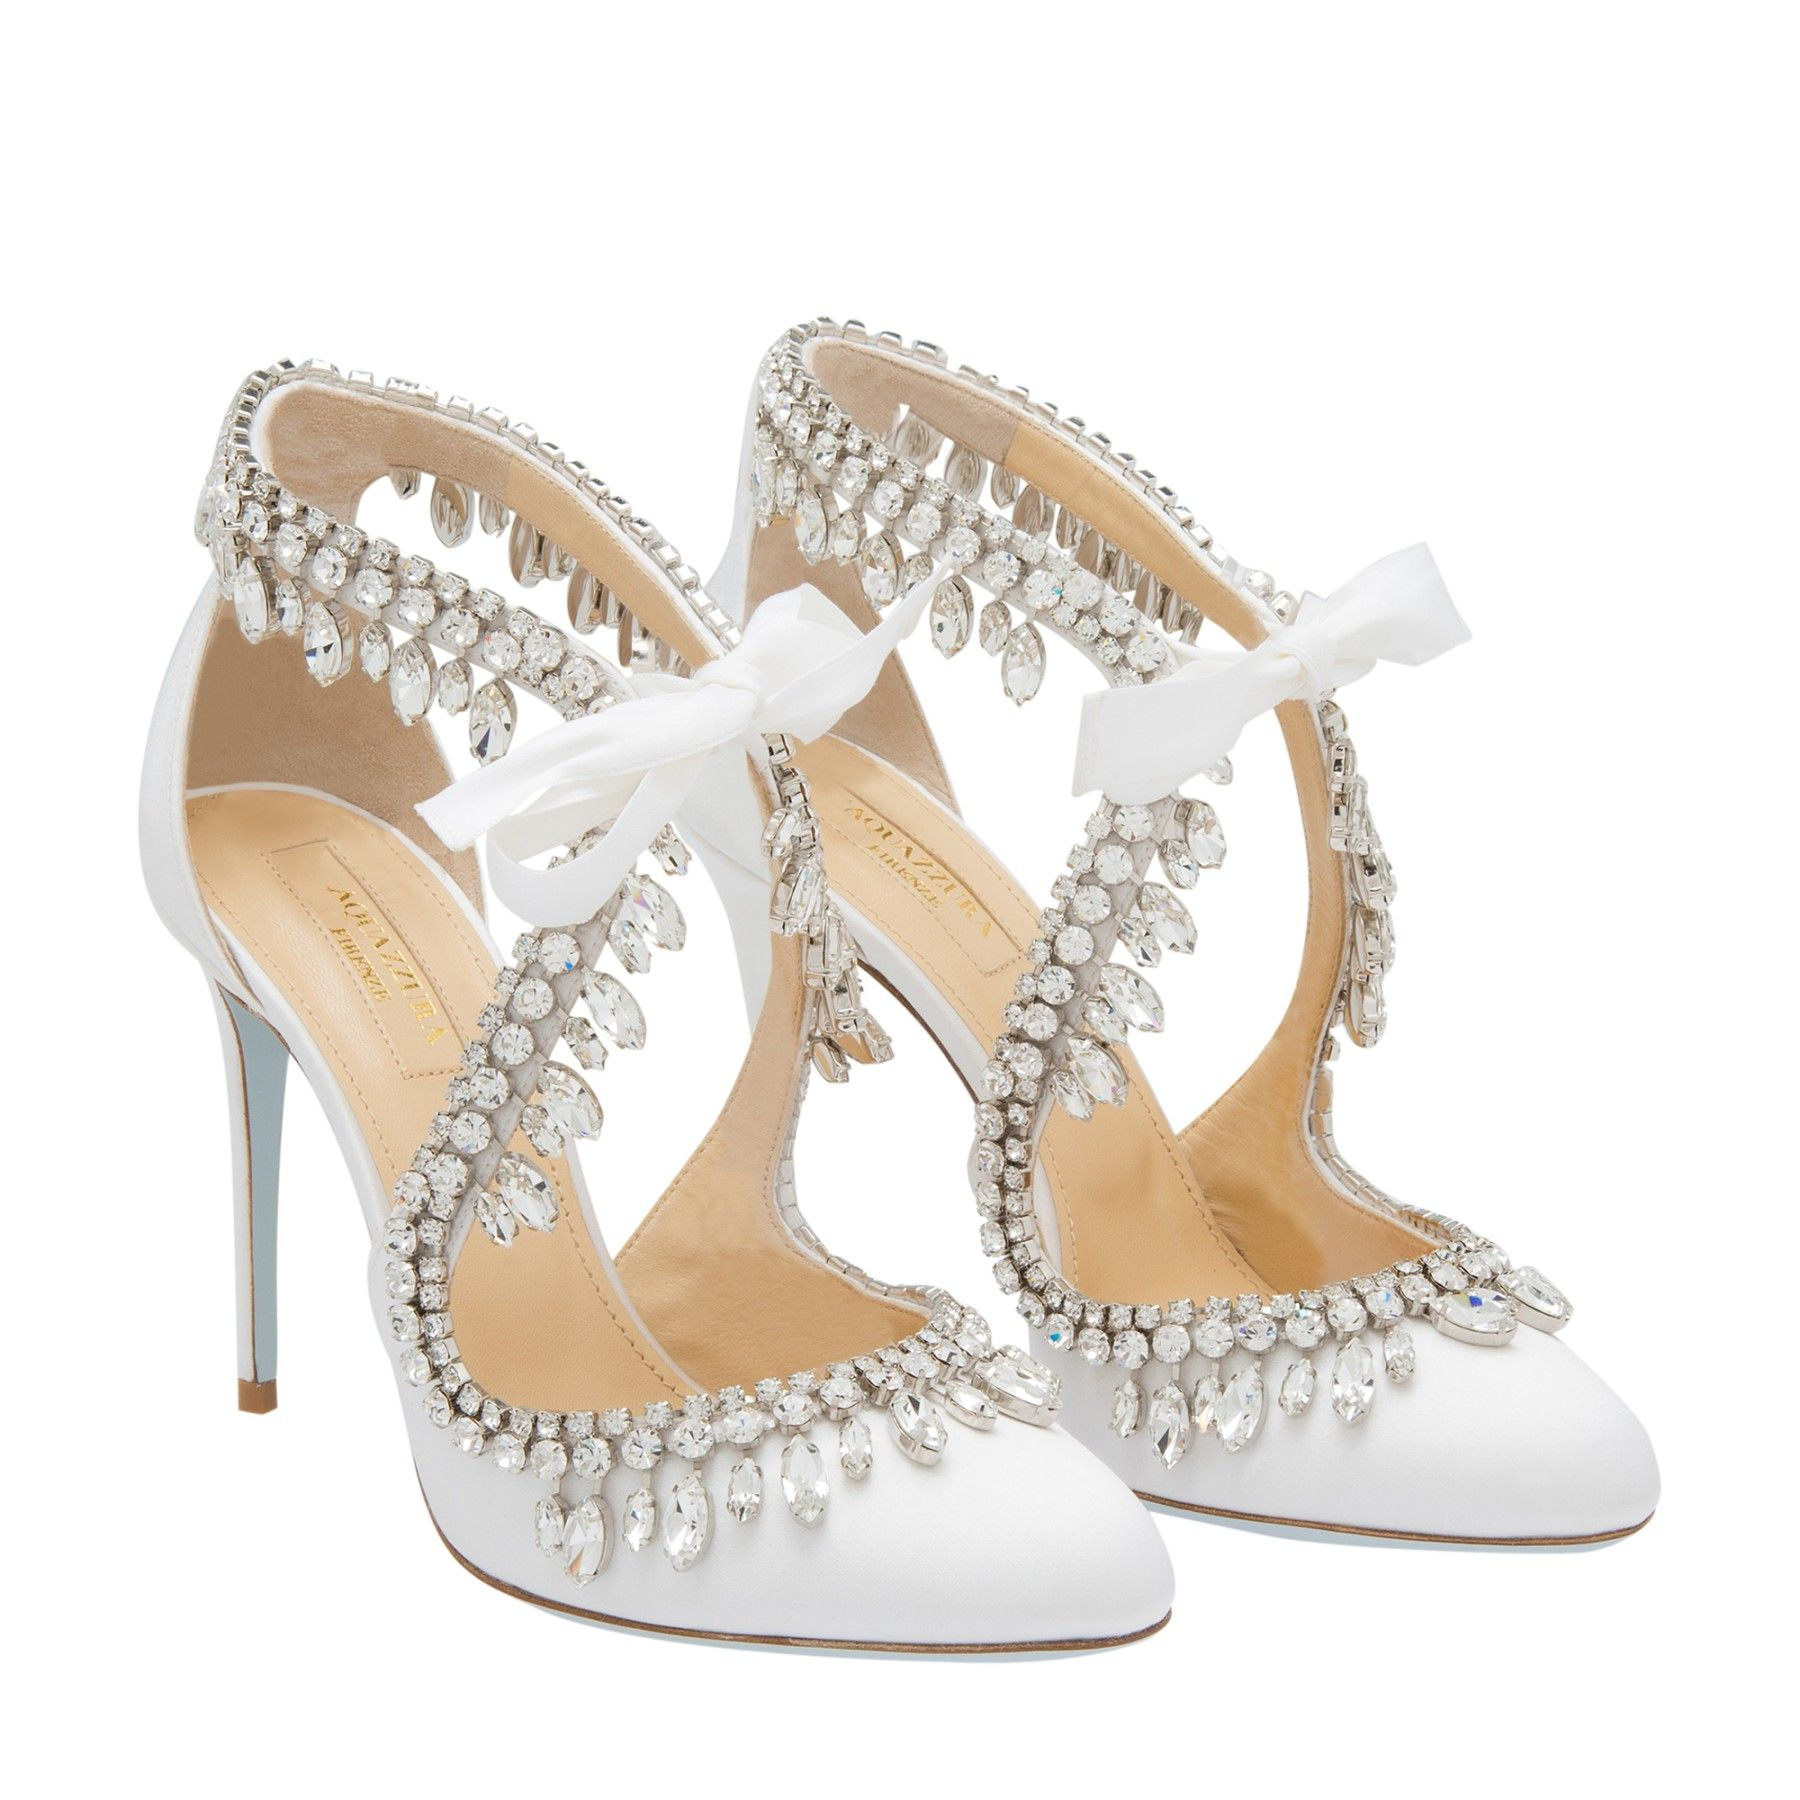 d3887dcaad11 Stella Jewel pumps - Aquazzura - Brands. Find this Pin and more on A shoes  heels embellished rhinestone jewelled sandals ...